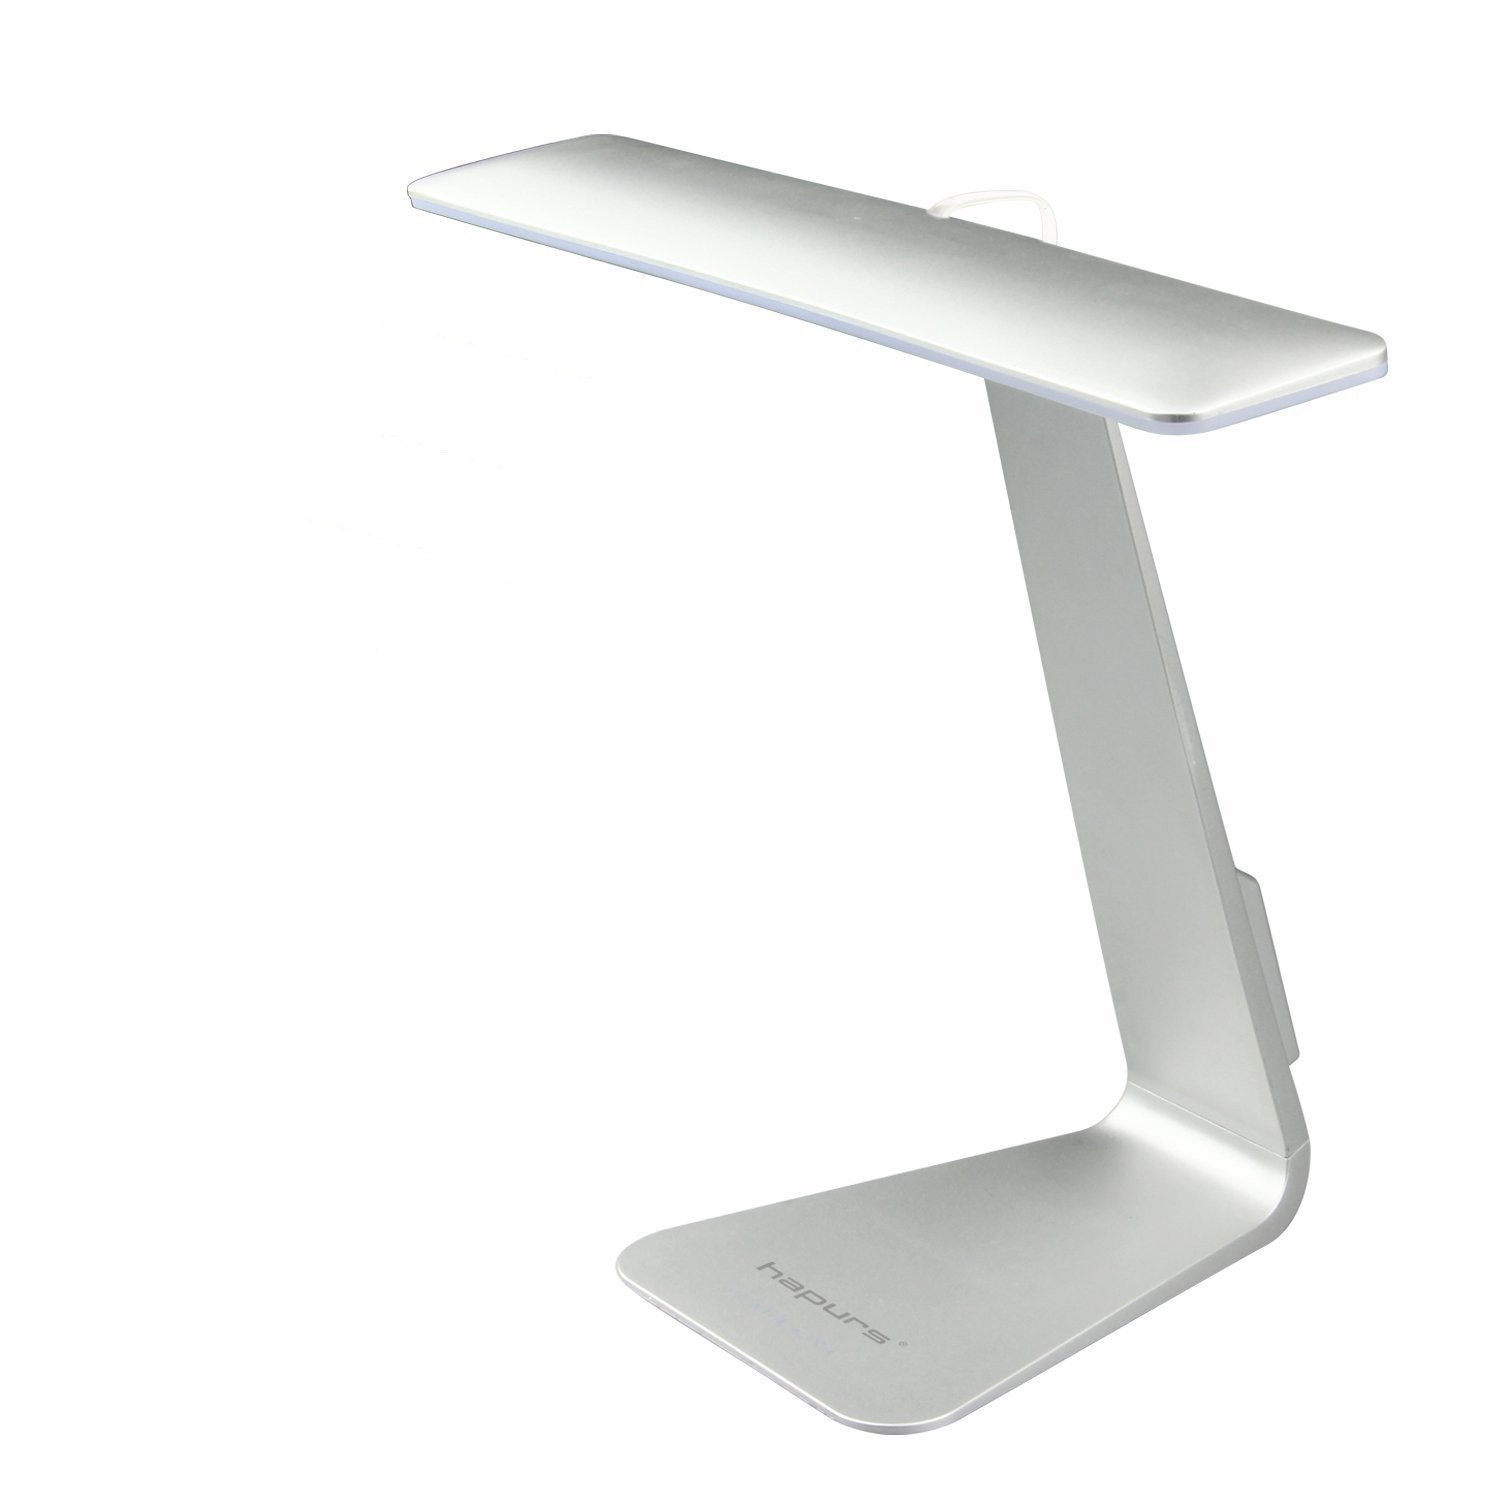 amazon ideas of ultrabrite table lamp desk unique dimmable control led lovely bestek touch